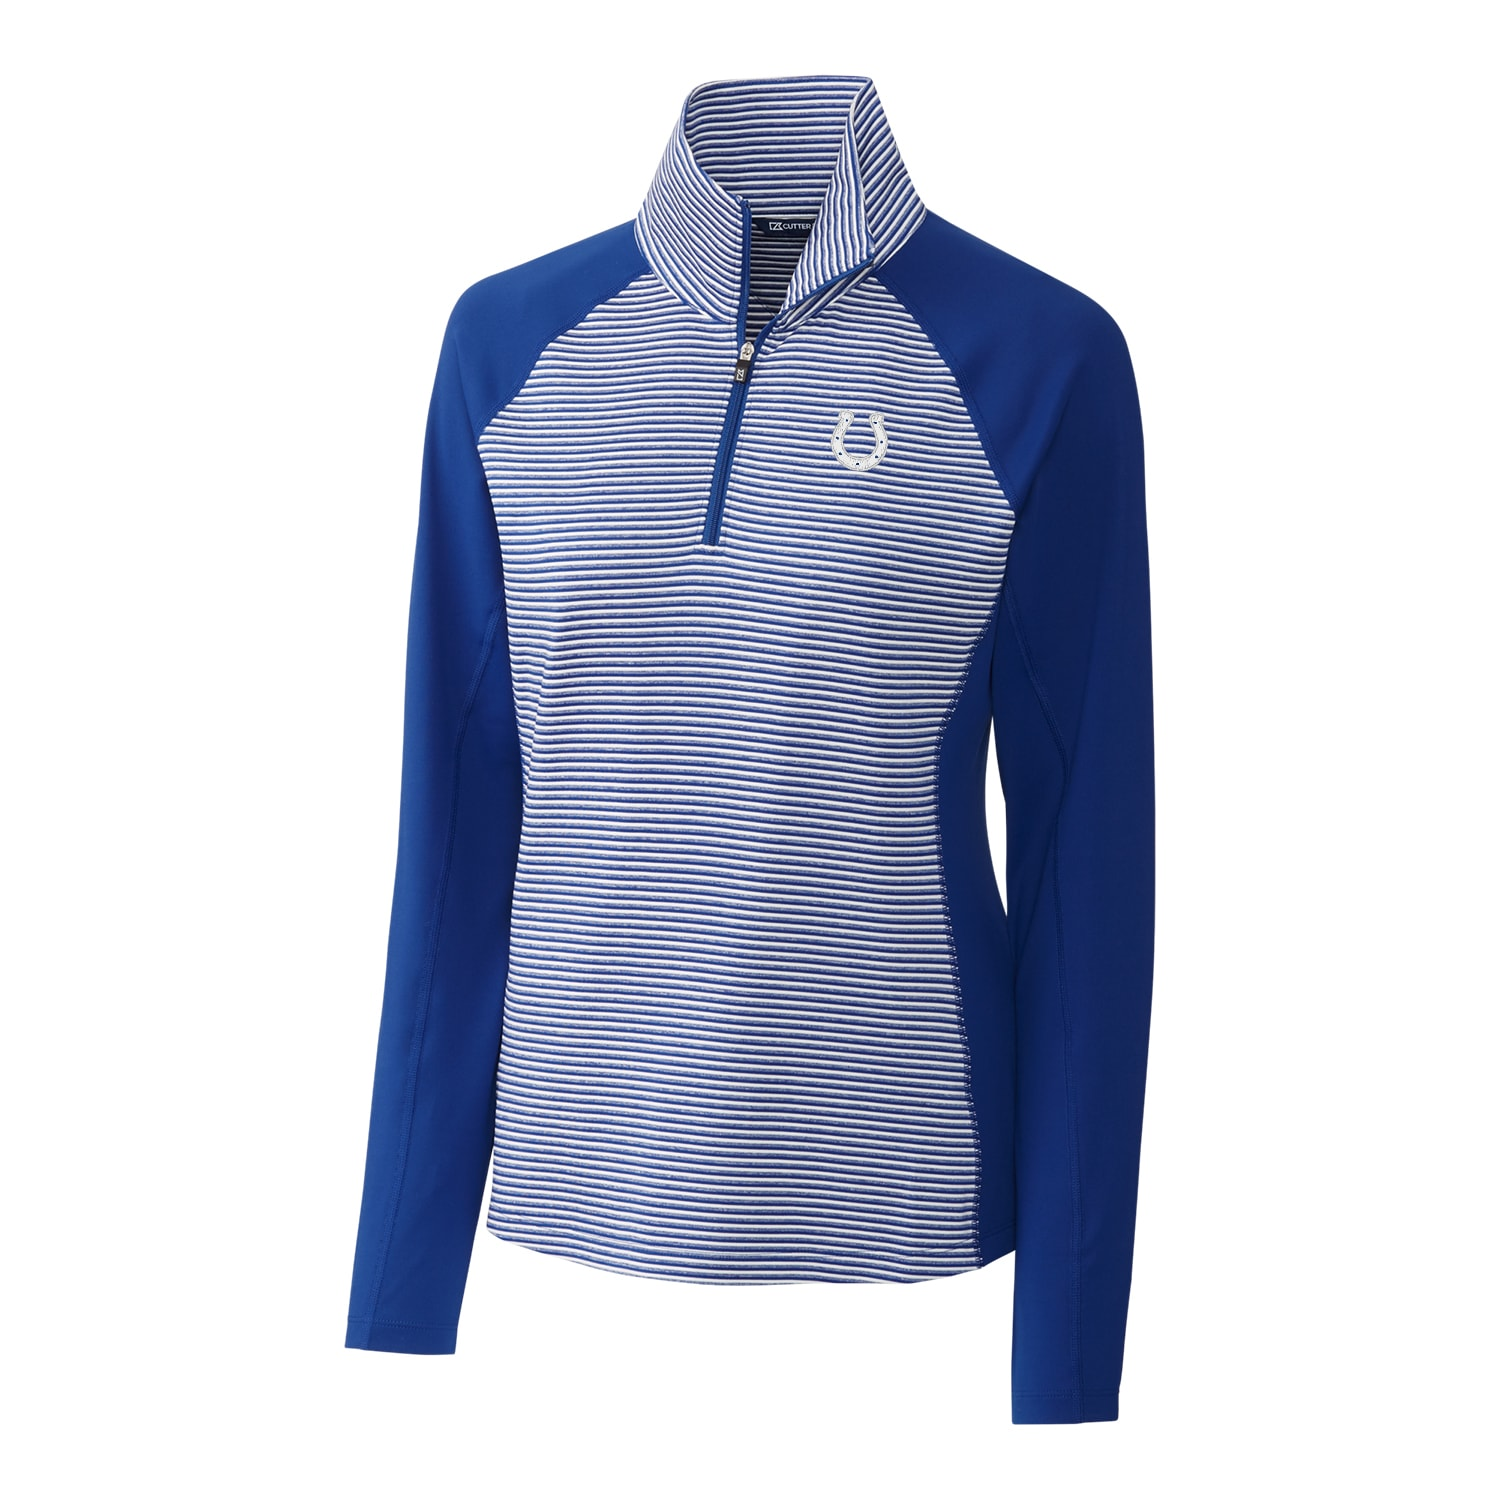 Indianapolis Colts Cutter & Buck Women's Forge Tonal Stripe Half-Zip Pullover Jacket - Blue